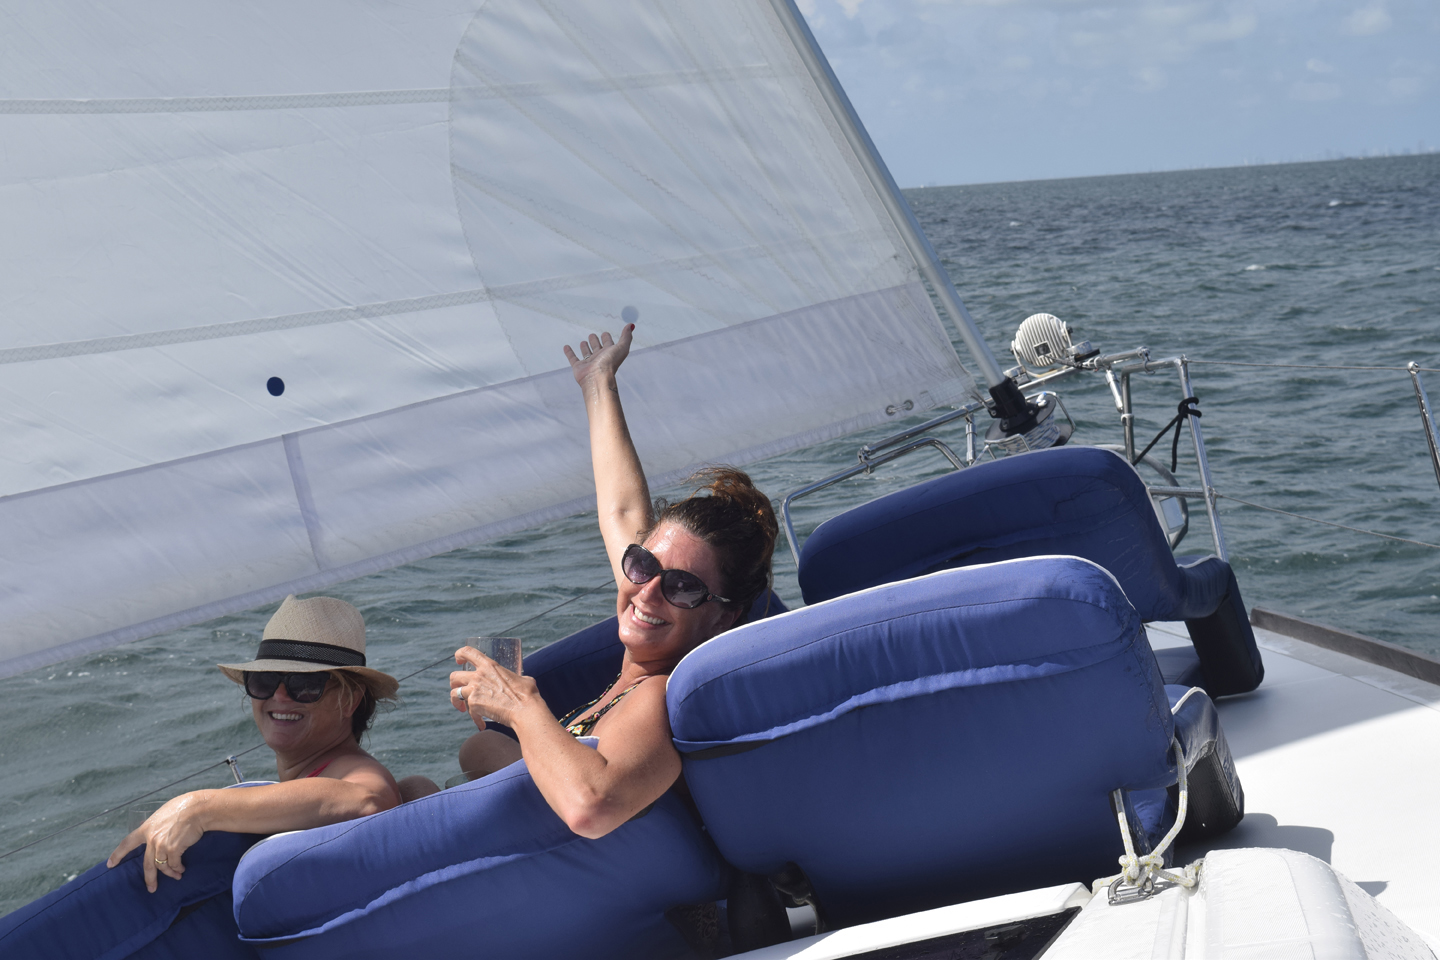 COME READY FOR AN AMAZING TIME WITH YOUR FRIENDS WHILE SAILING